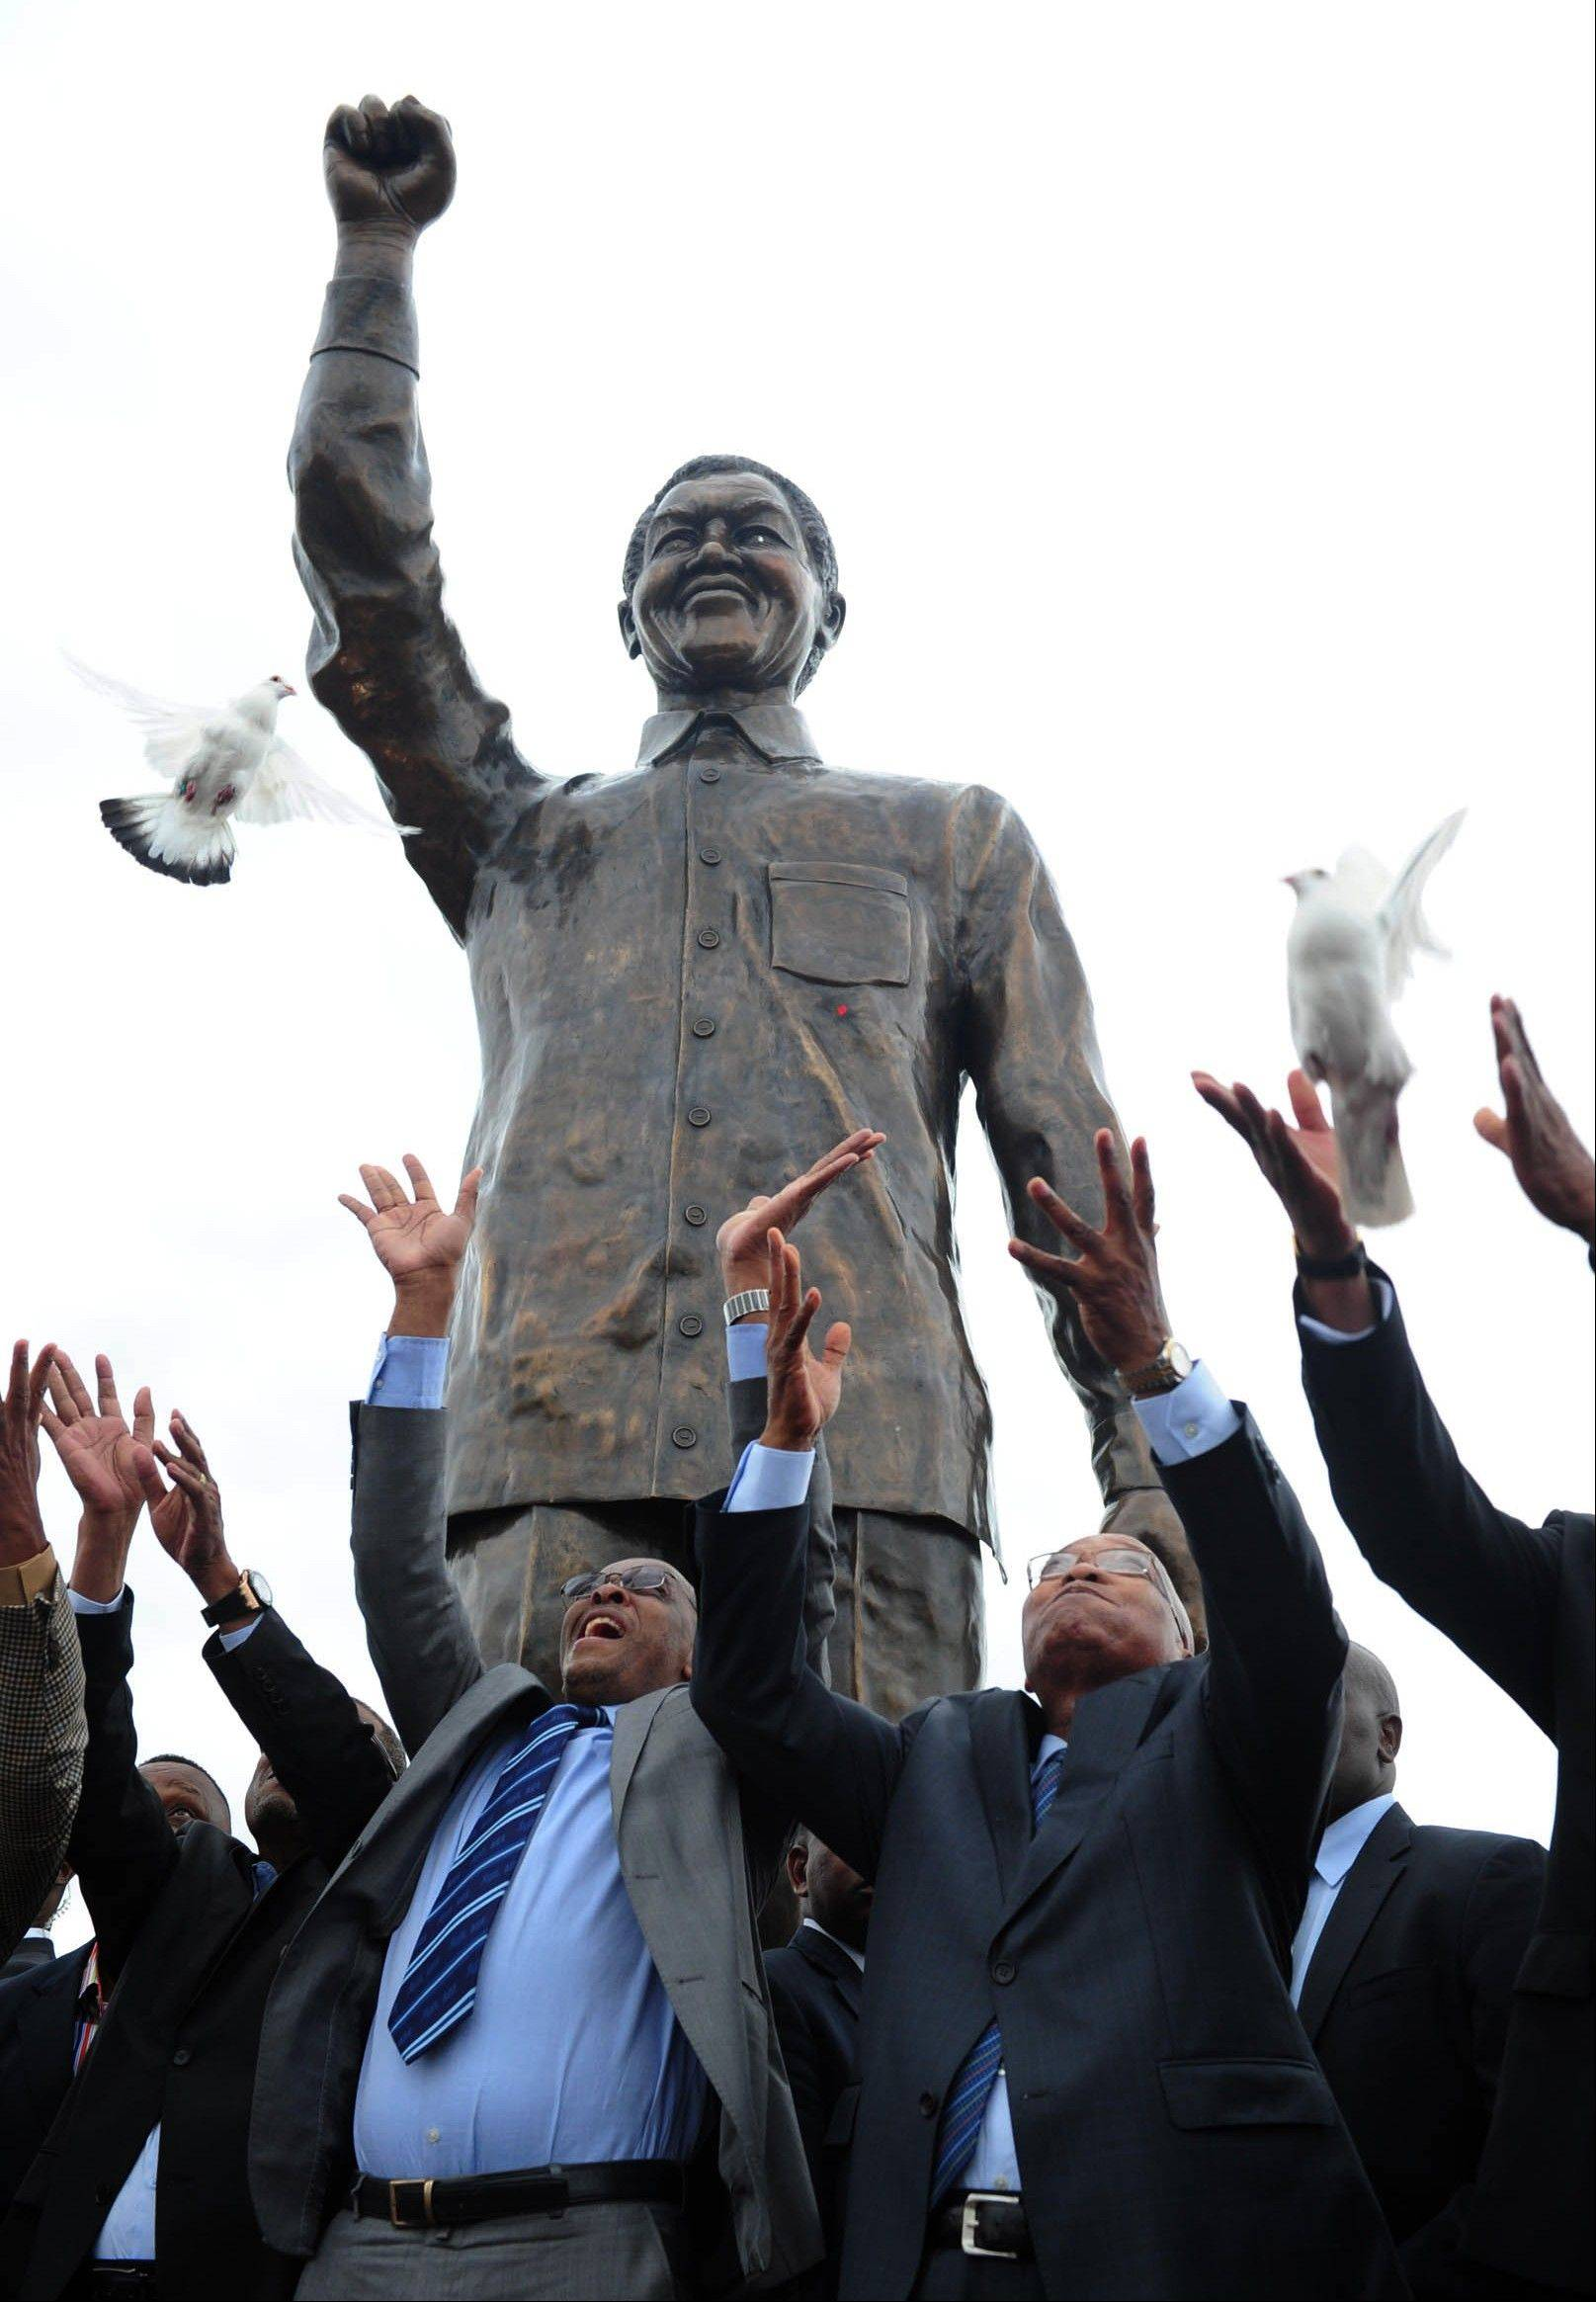 Doves are released after a giant statue of former President Nelson Mandela was unveiled on Naval Hill in Bloemfontein, South Africa, Thursday, Dec 13, 2012, by President Jacob Zuma, front right, ahead of the ruling African National Congress�s elective conference. Mandela, who has been hospitalized since the weekend, is recovering from a lung infection.